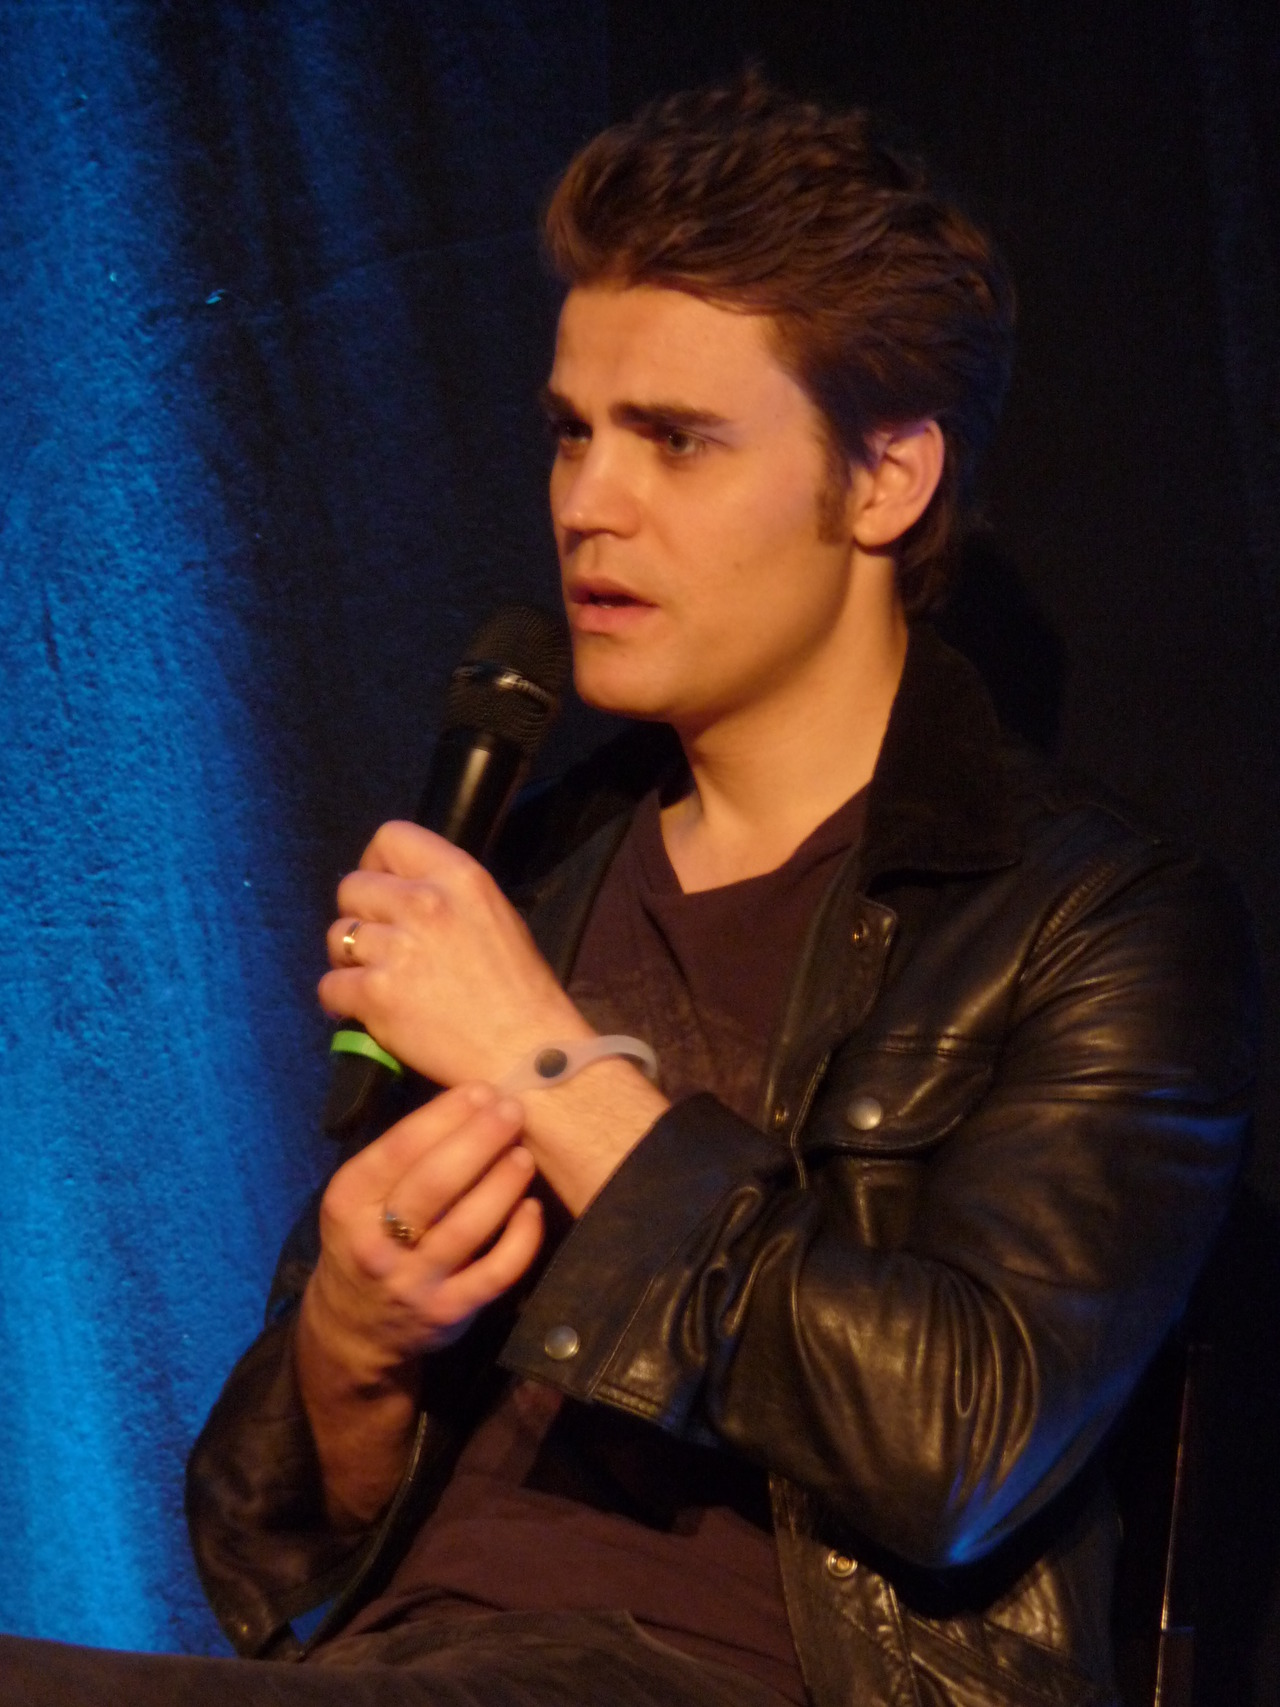 Paul at Bloody Night Con 유럽 - Brussels (May 2013)